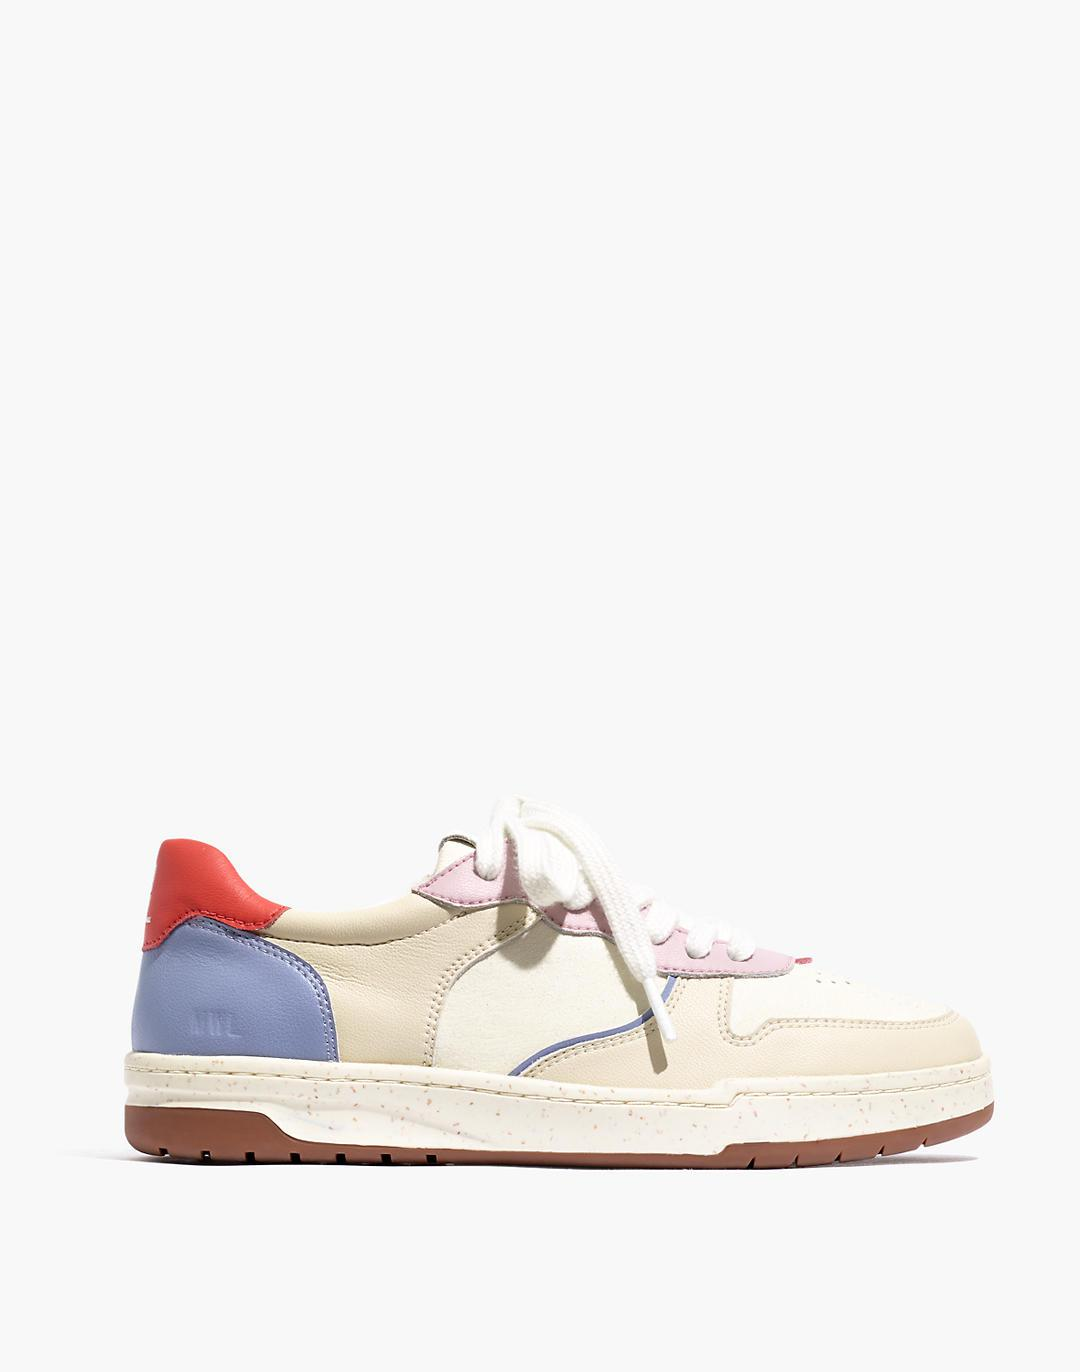 Court Sneakers in Colorblock Leather and Nubuck 1